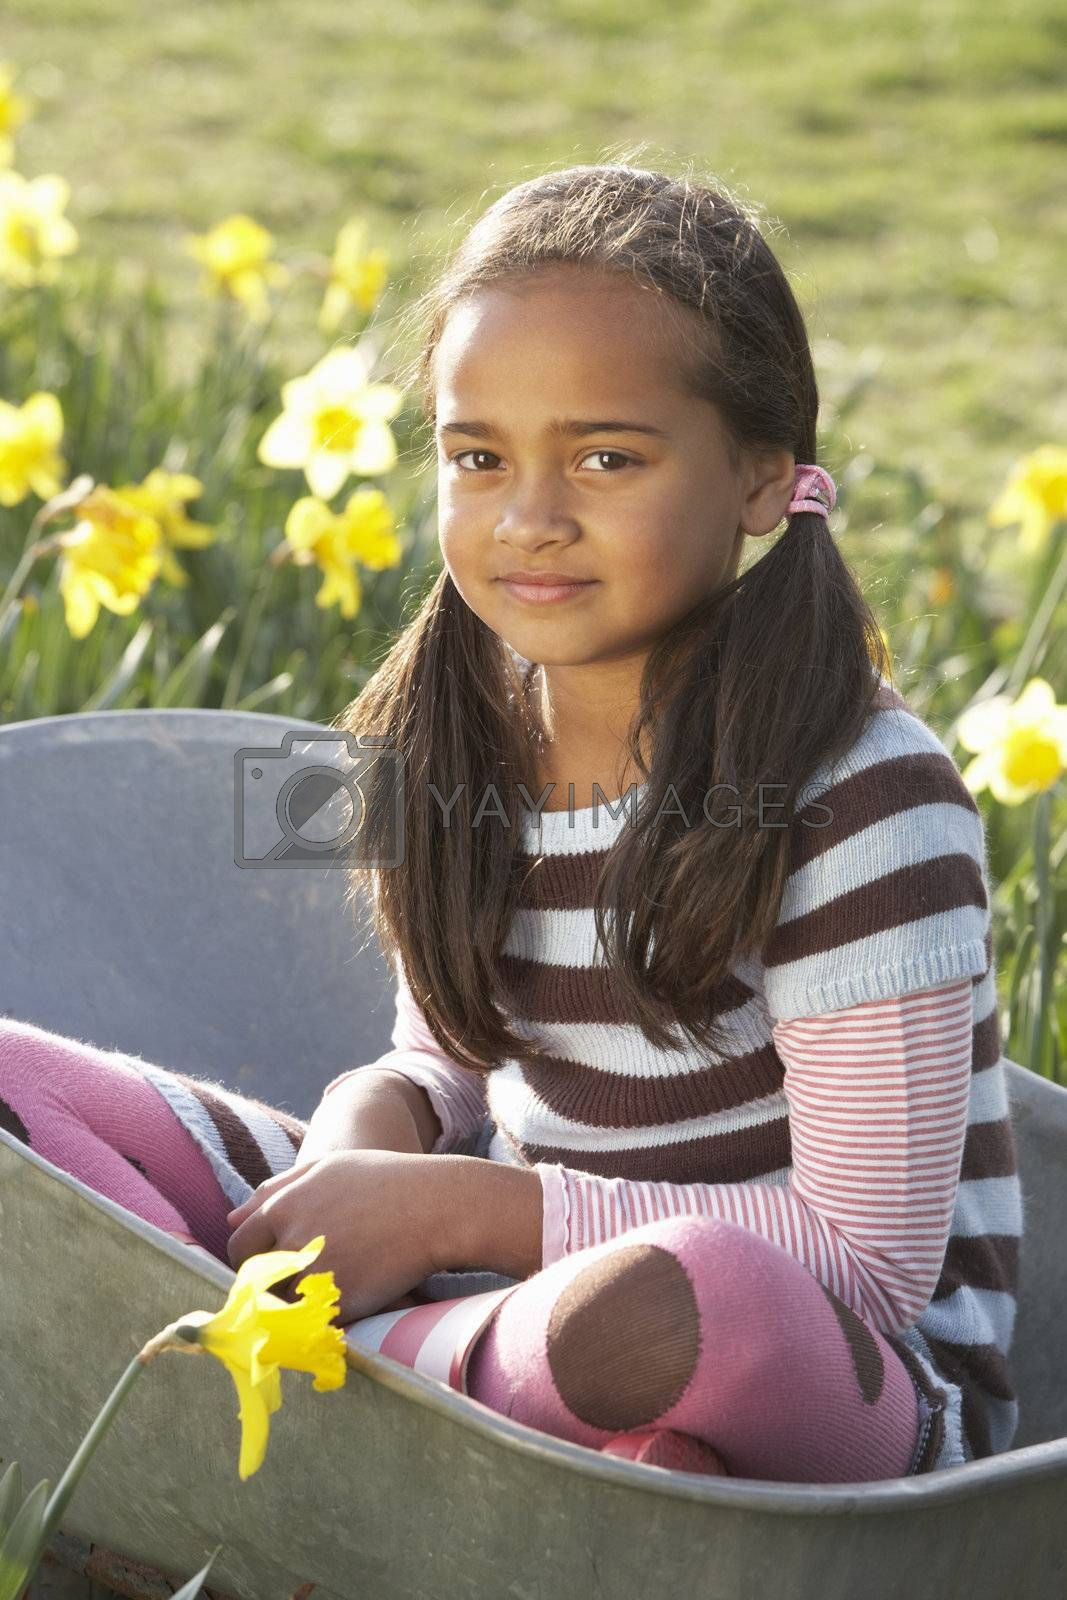 Royalty free image of Girl On Sitting In Wheelbarrow In Daffodil Field by omg_images